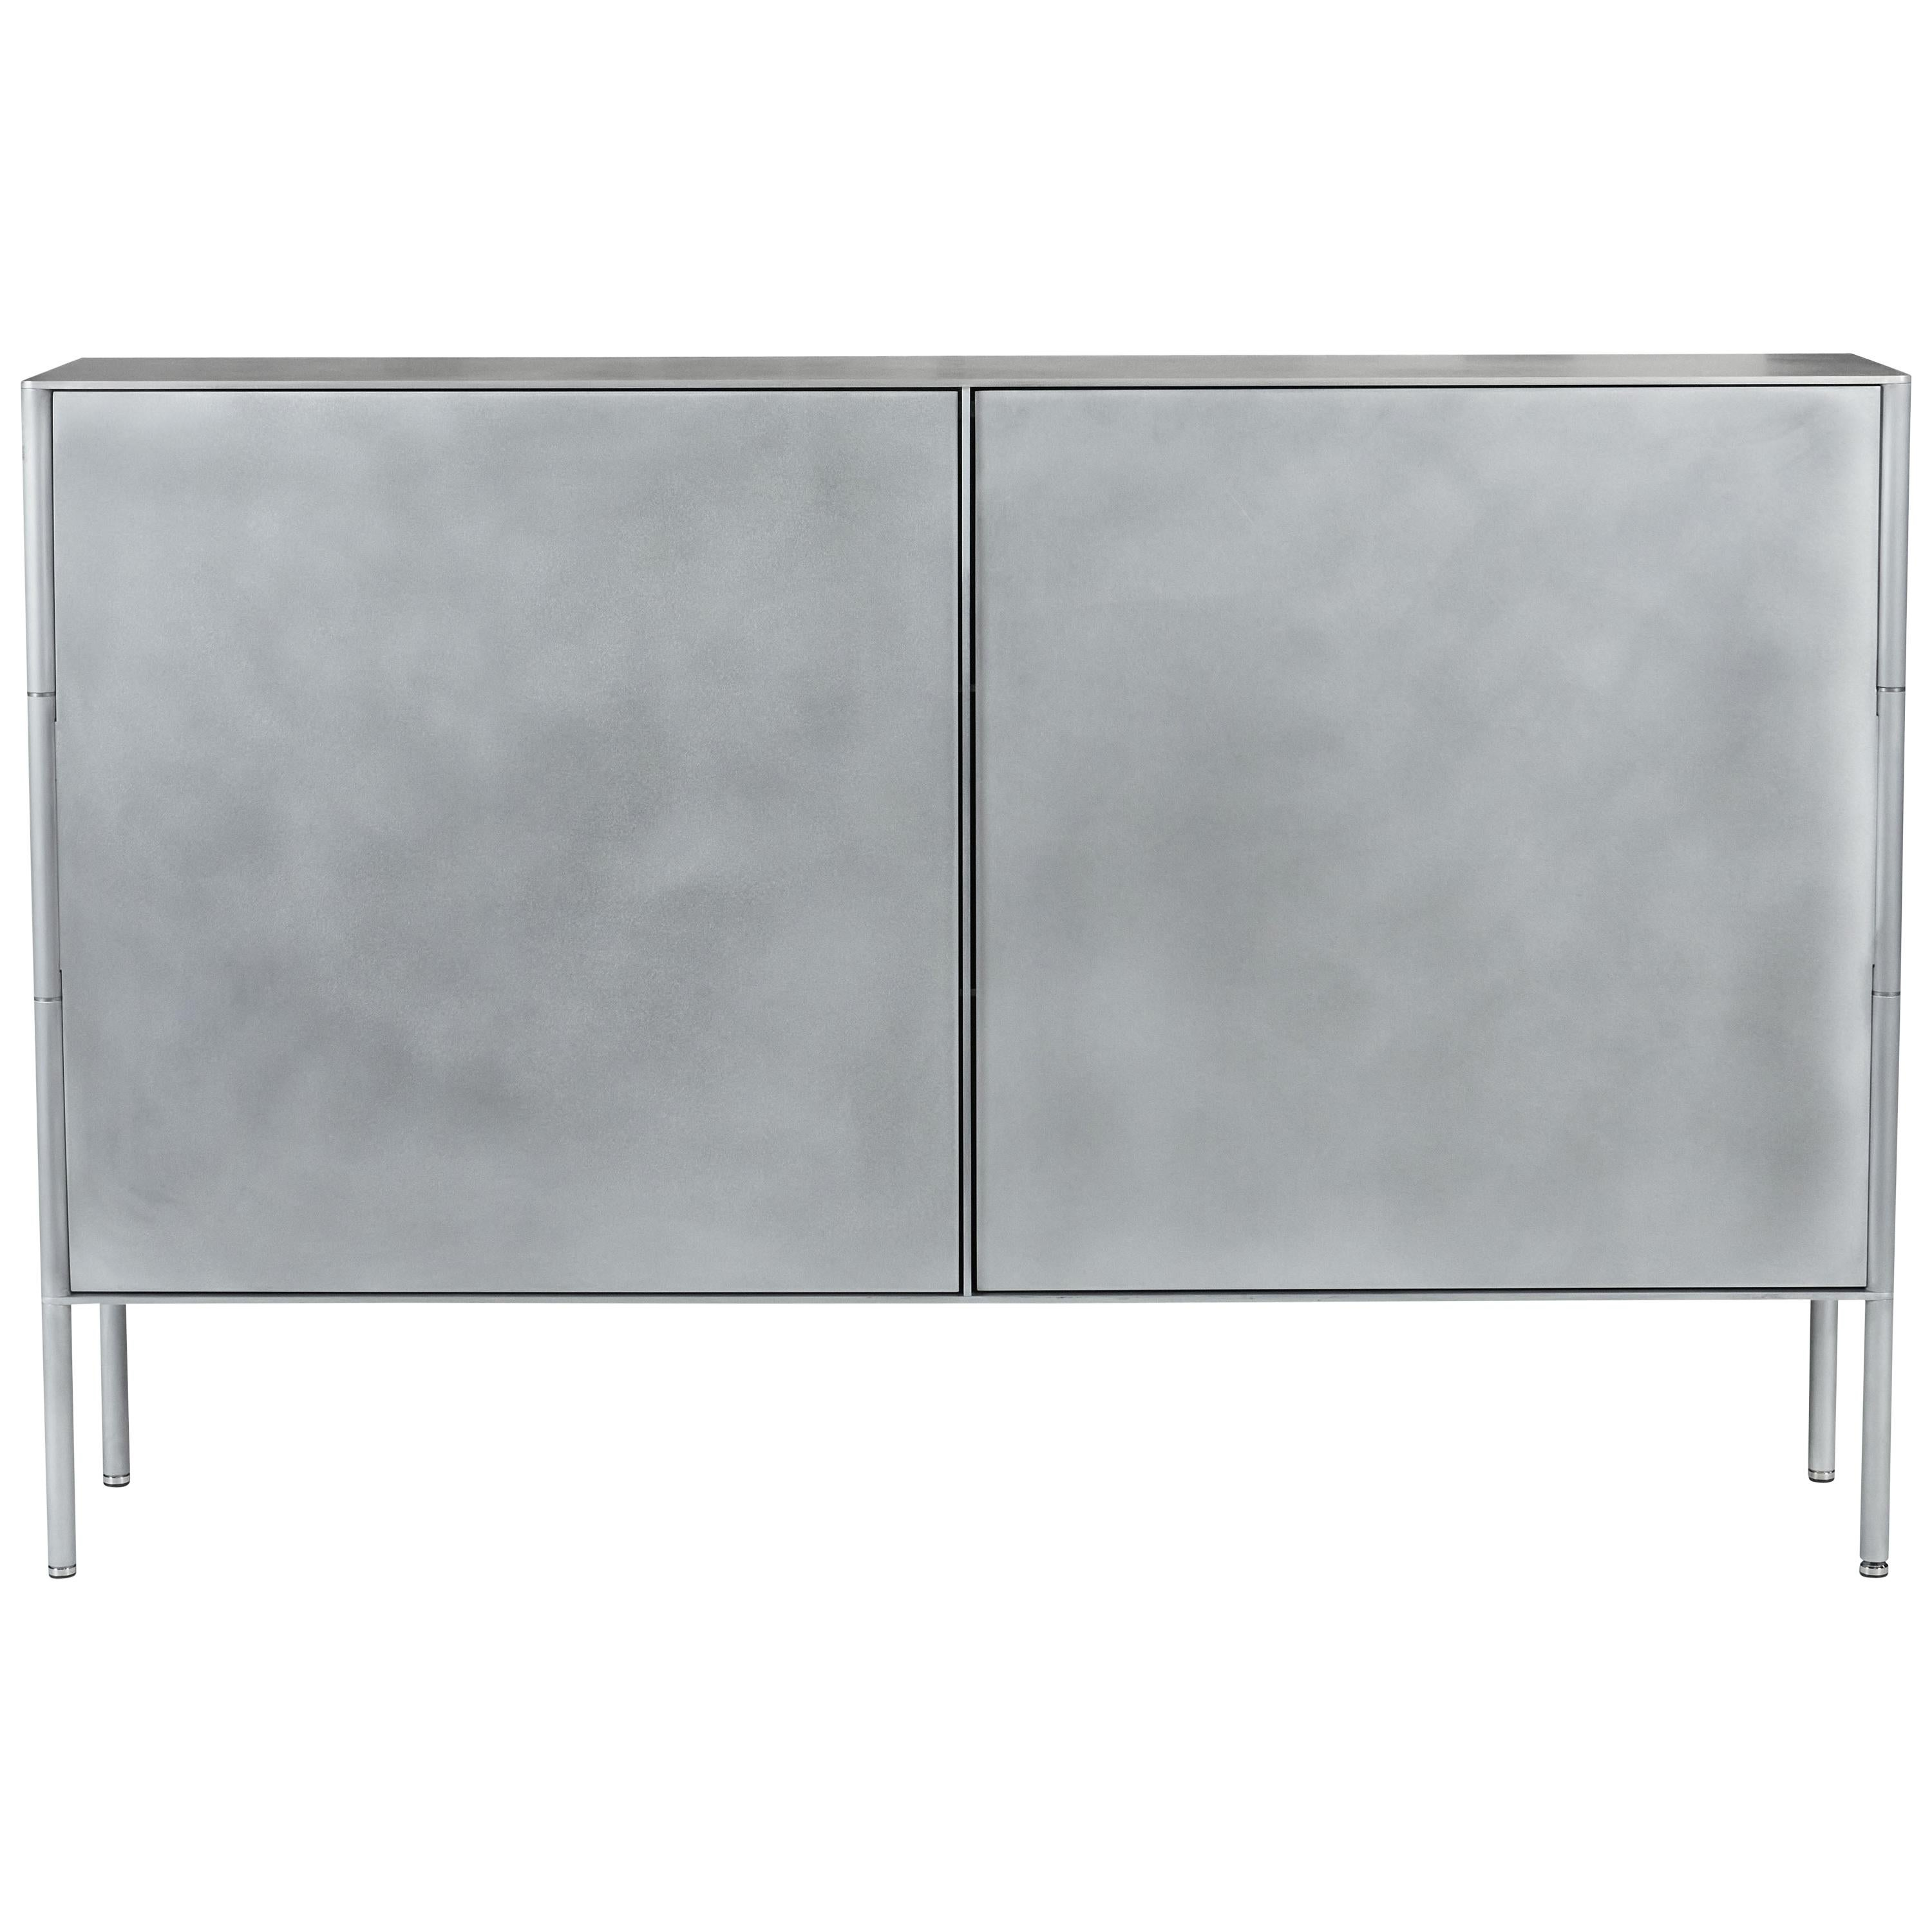 SW Cabinet by Jonathan Nesci in Cut and Machined Waxed Aluminum